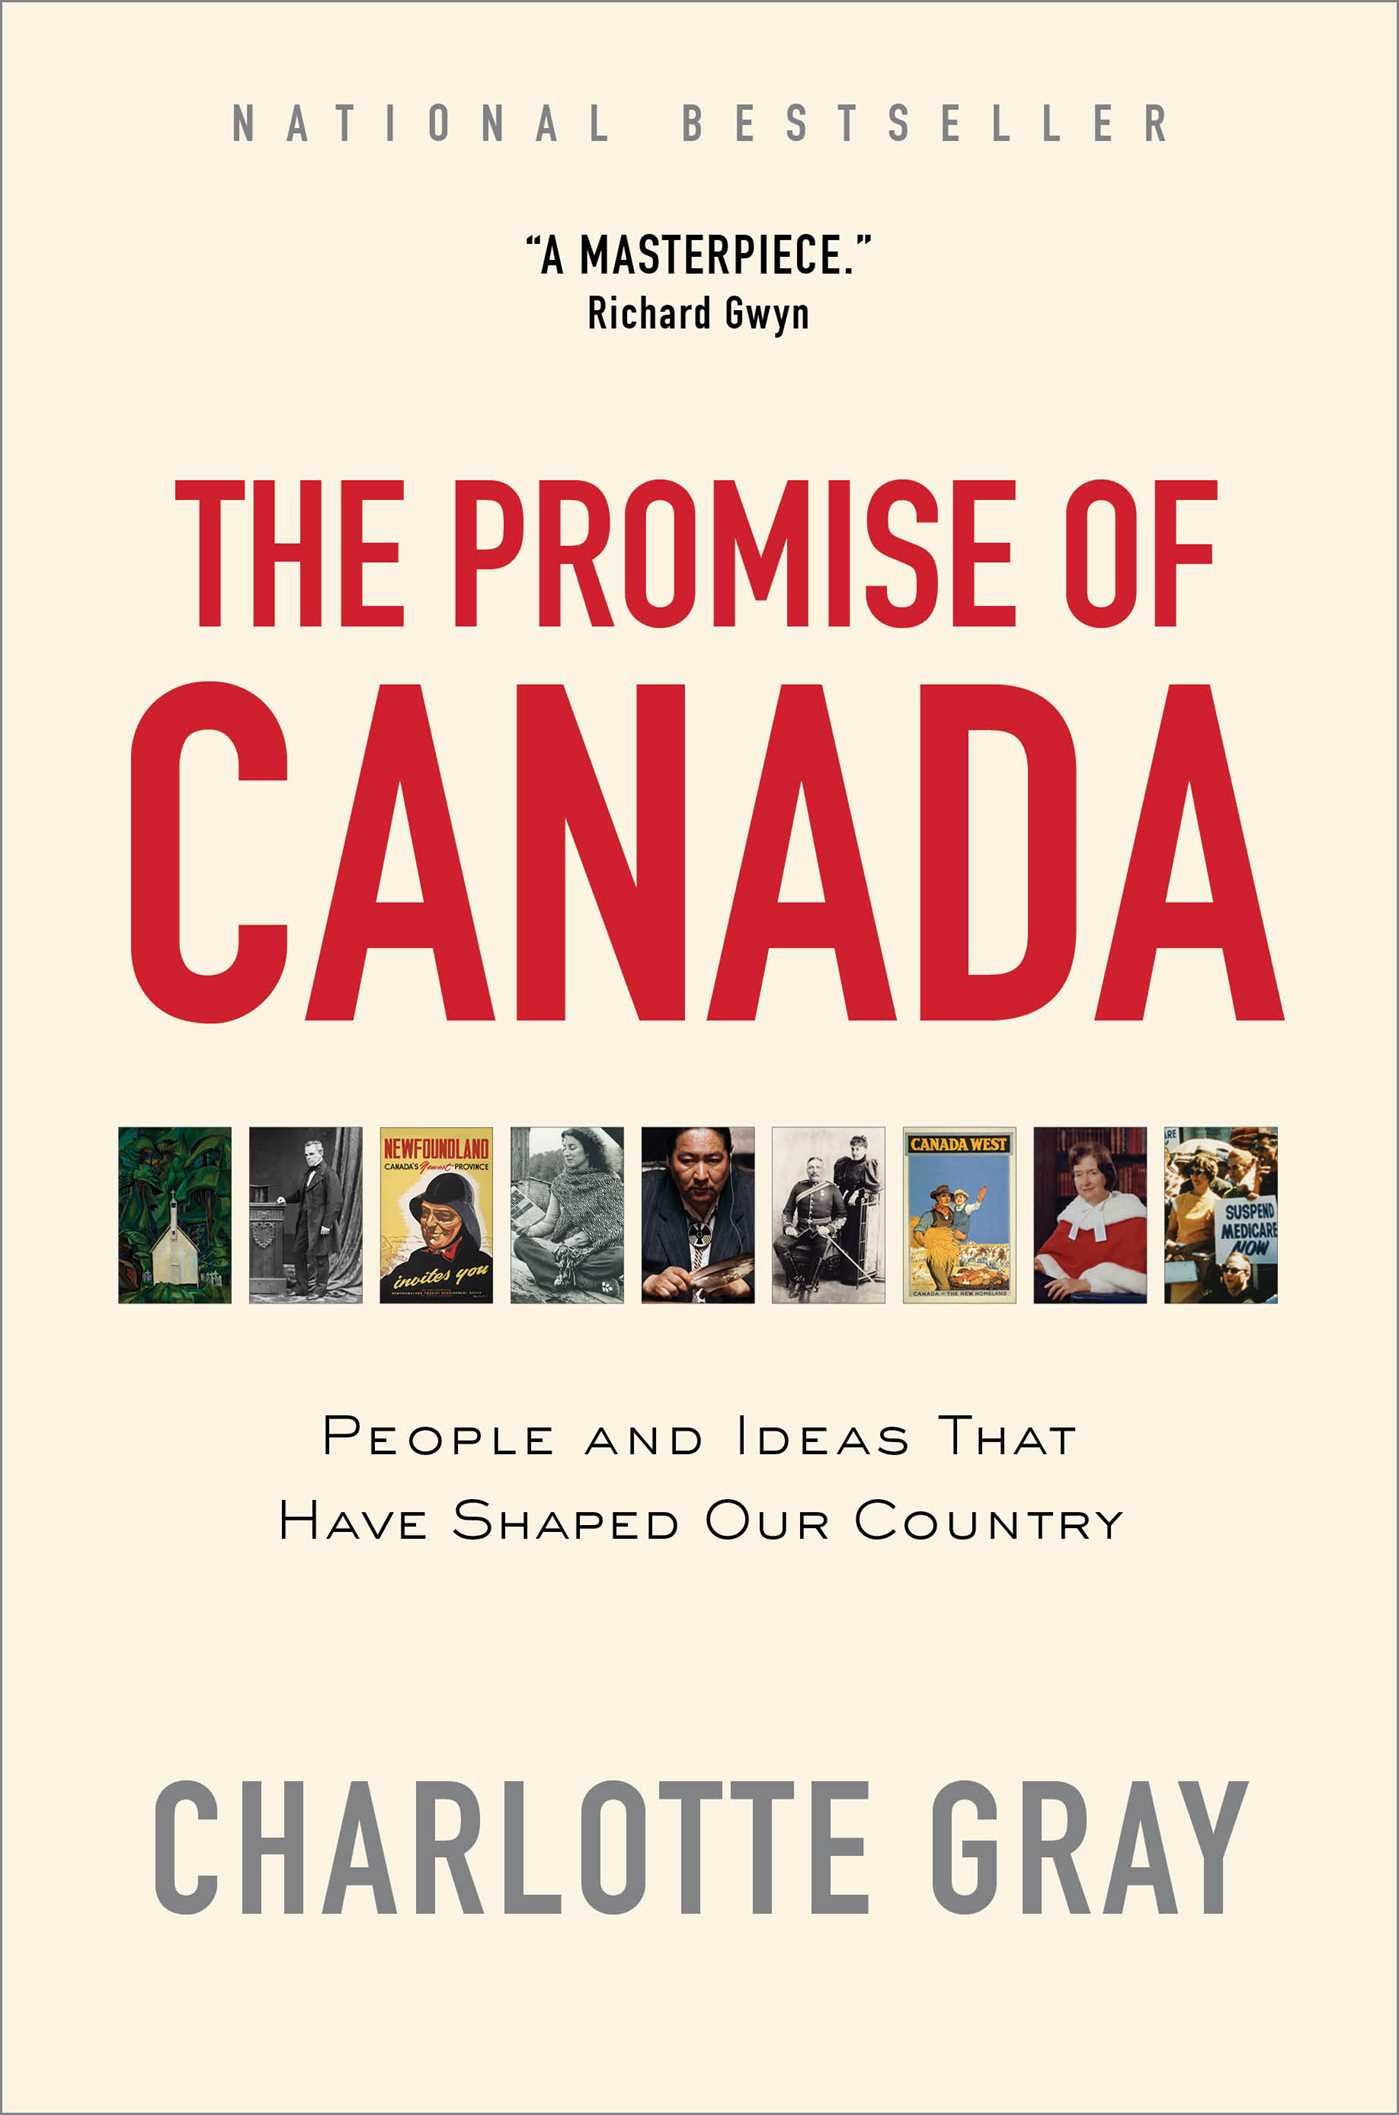 The Promise of Canada: People and Ideas That Have Shaped Our